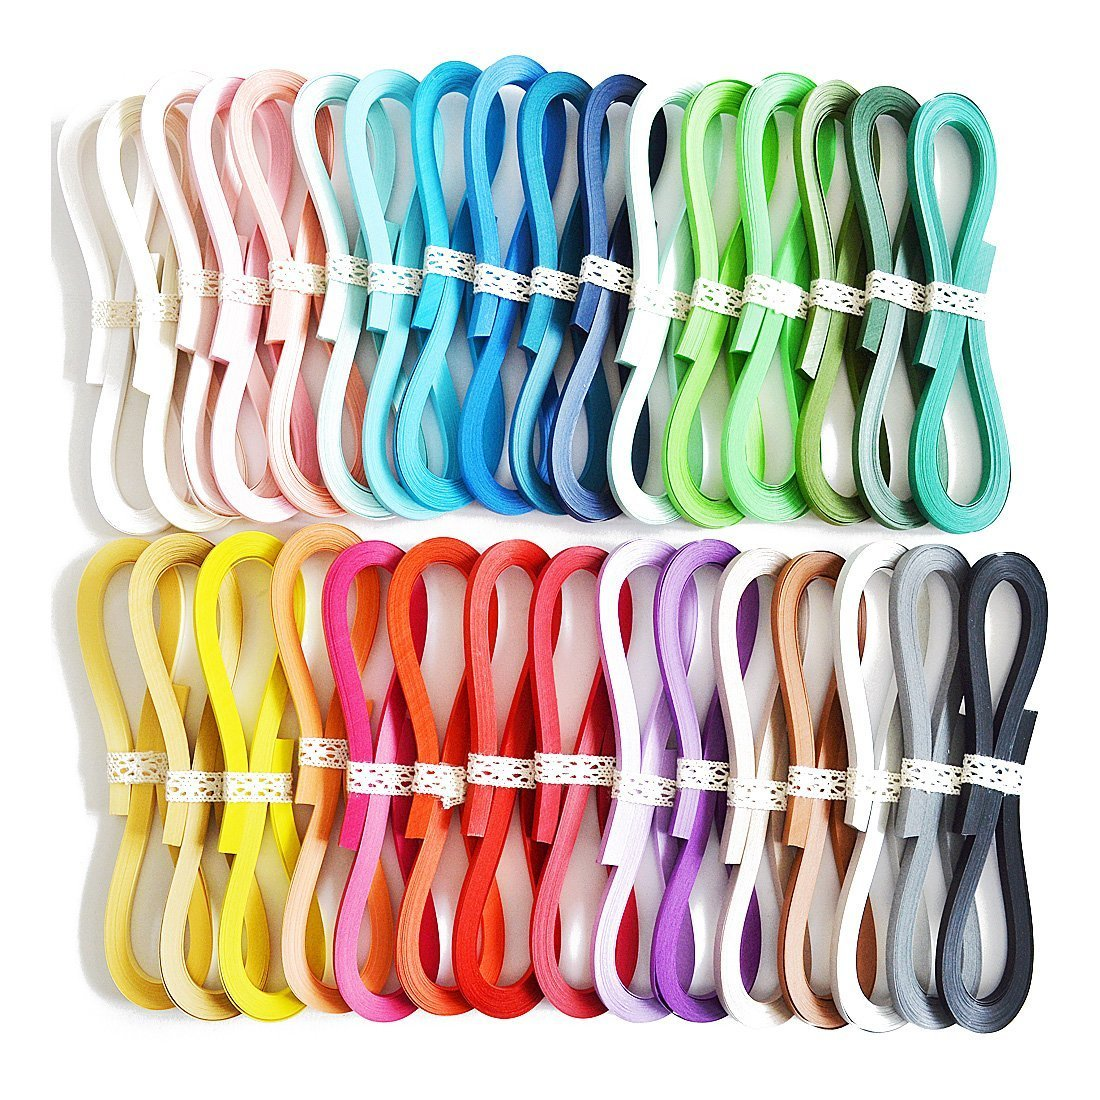 JUYA Tant Paper Quilling Set 1280 Strips 32 Colors 39cm Length/strips (Paper Width 3mm) QP390TP